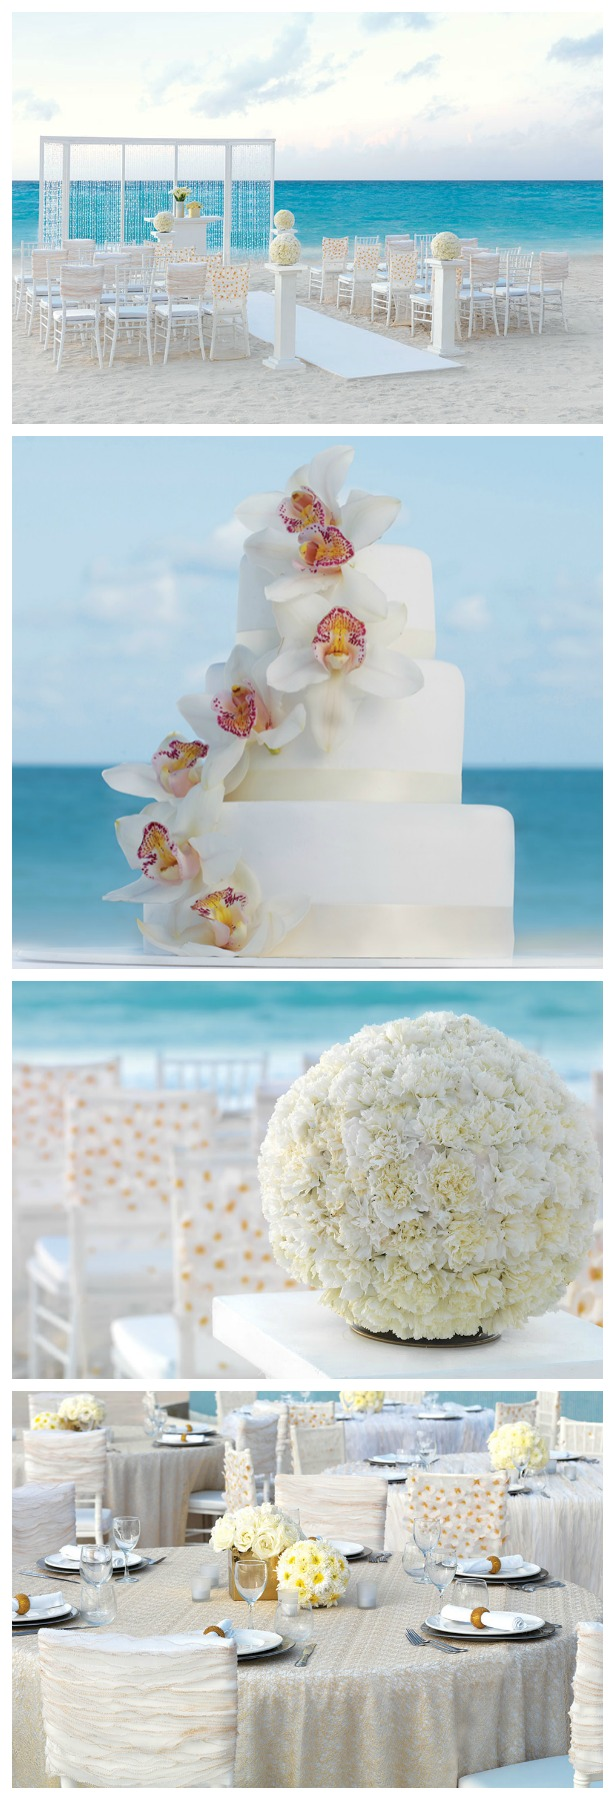 Apple Vacations and Hard Rock Hotels Wedding by Collin Cowie